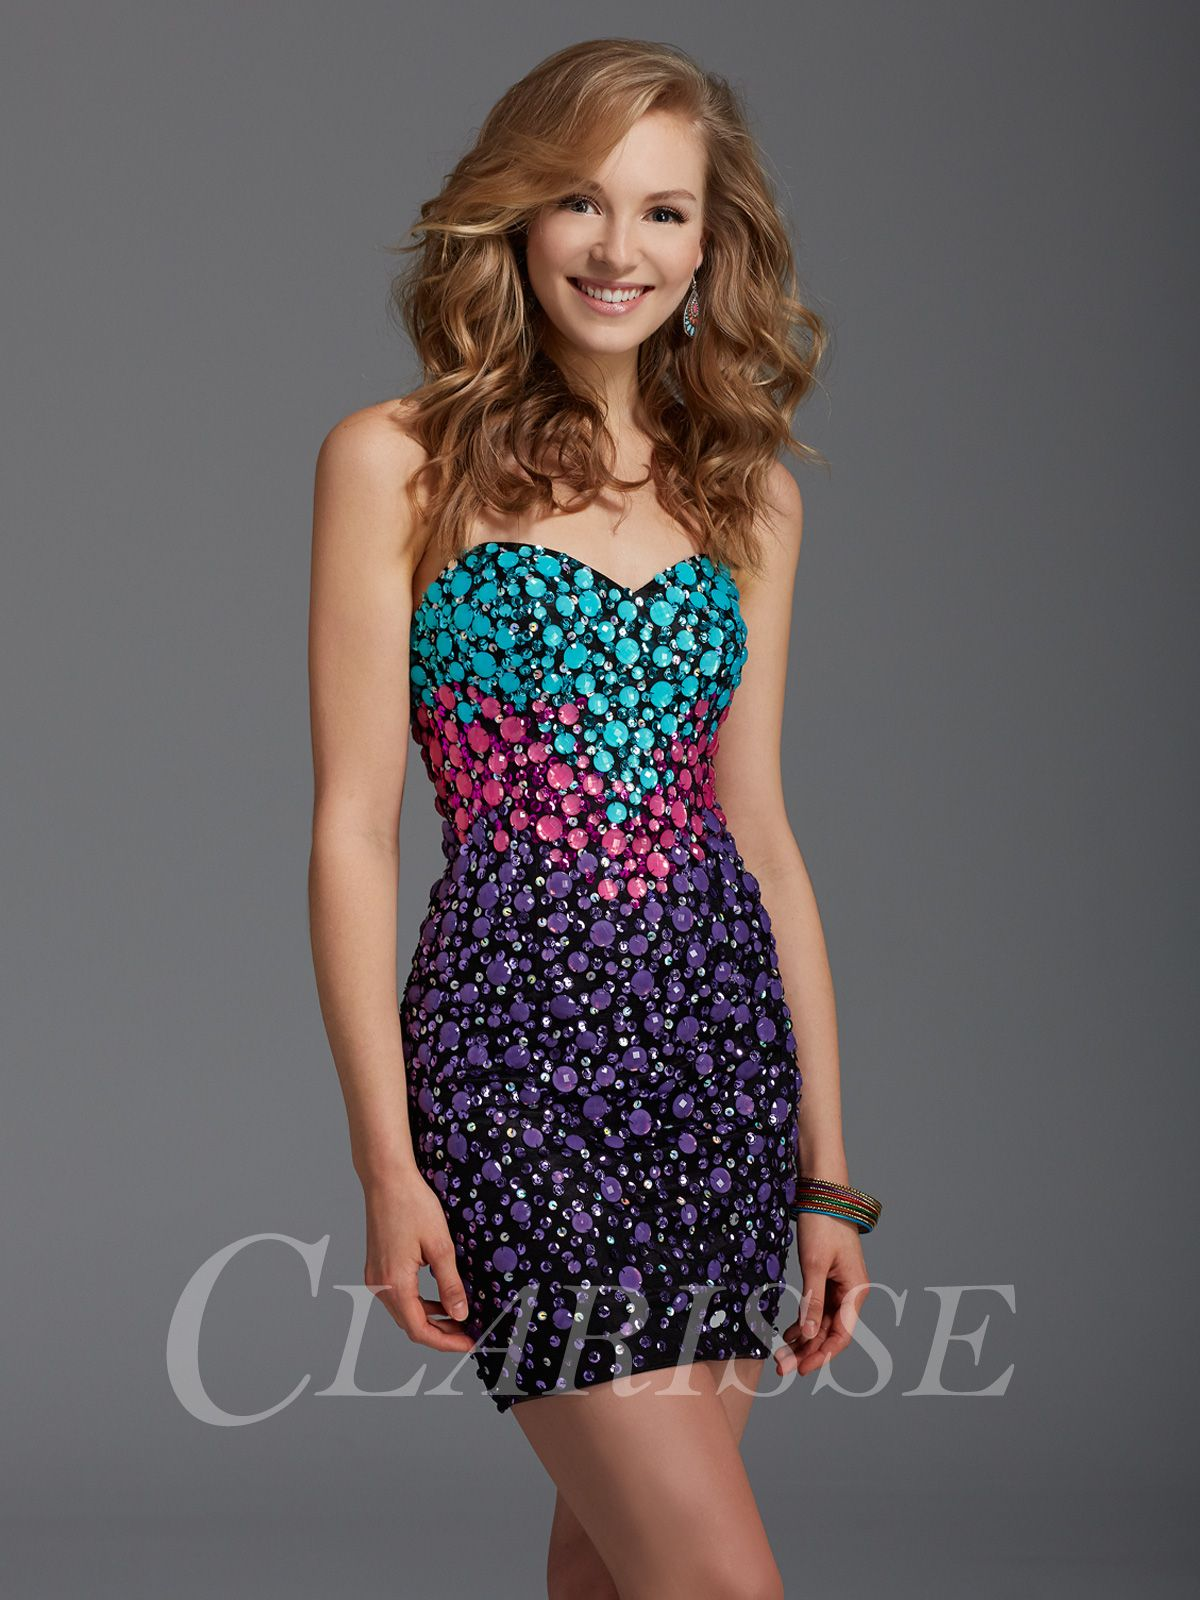 76ac7957de Clarisse Colorful Embellished Homecoming Dress 2936